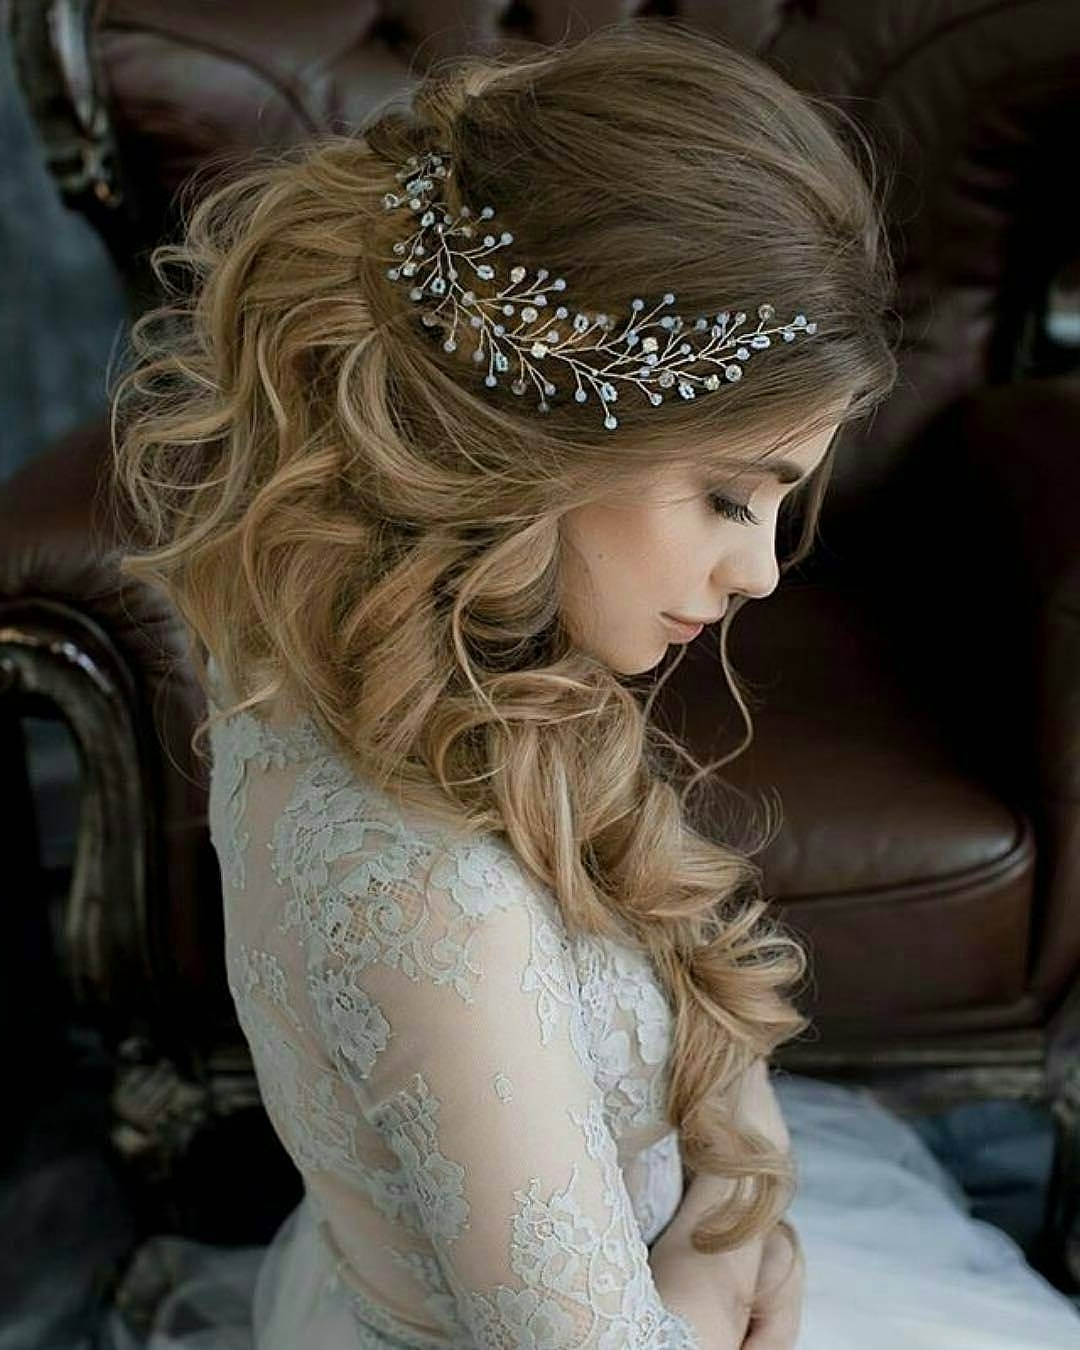 10 Lavish Wedding Hairstyles For Long Hair – Wedding Hairstyle Ideas Pertaining To Widely Used Wedding Hairstyles With Long Hair (View 1 of 15)